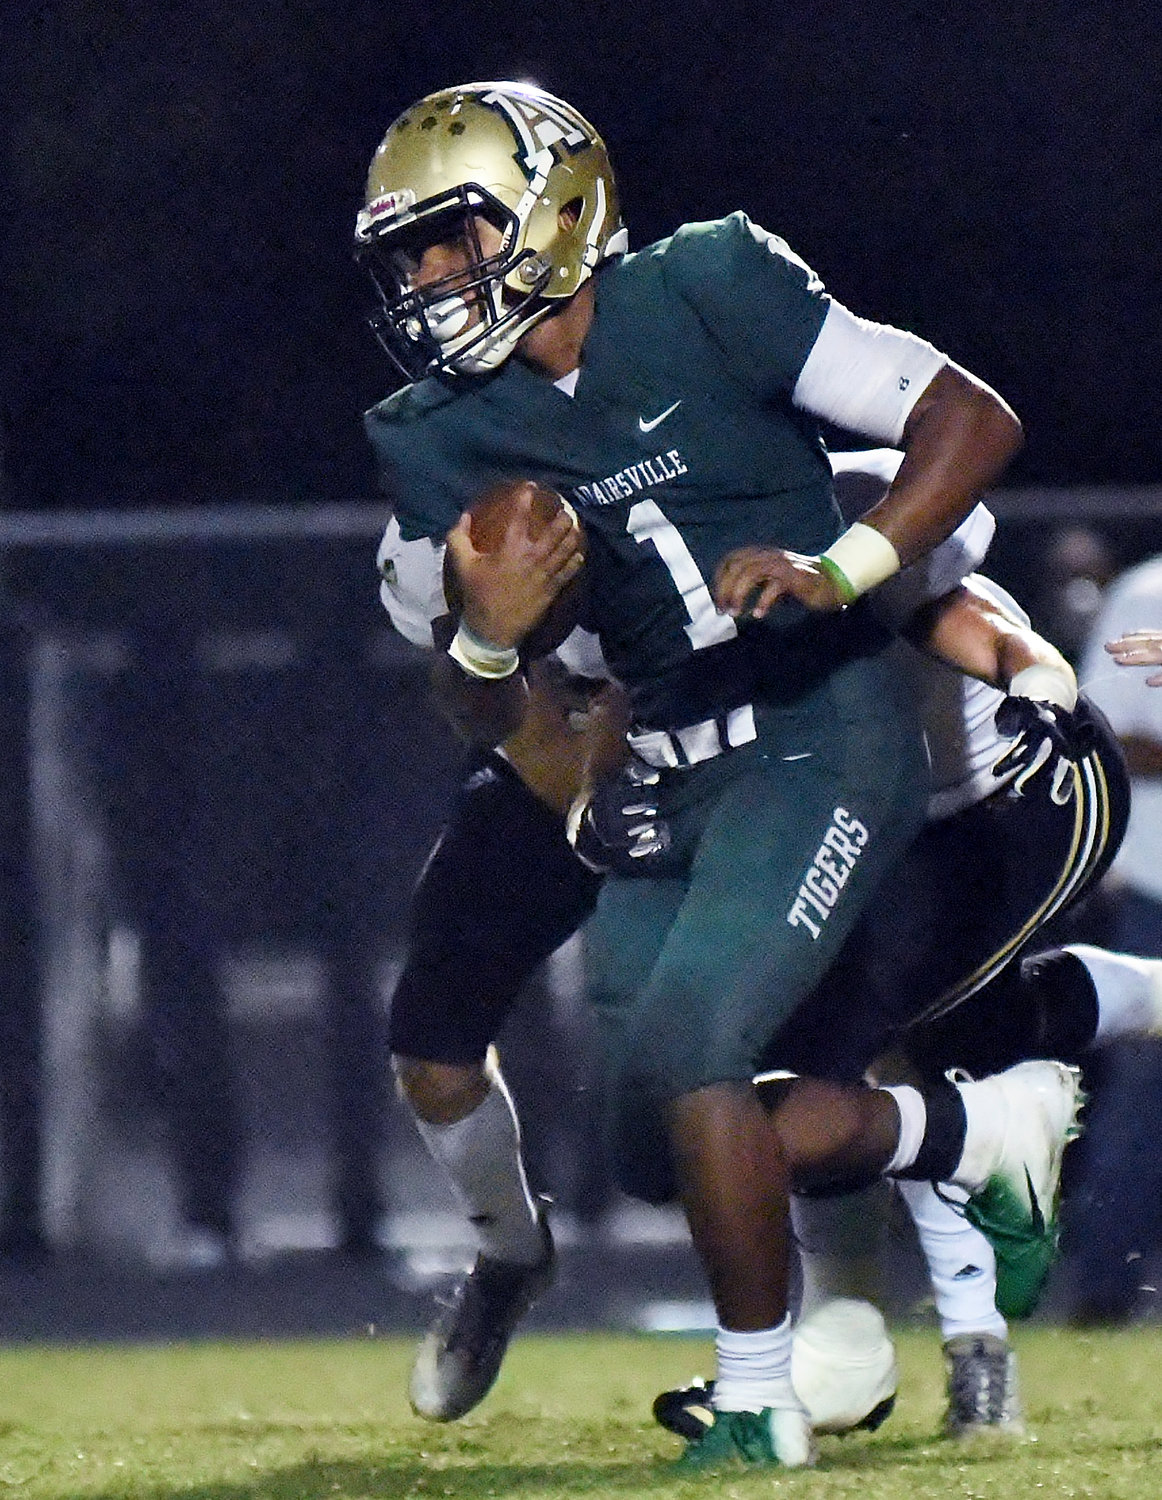 Adairsville senior Mason Boswell runs the ball against Calhoun during Friday night's game at Tiger Valley.